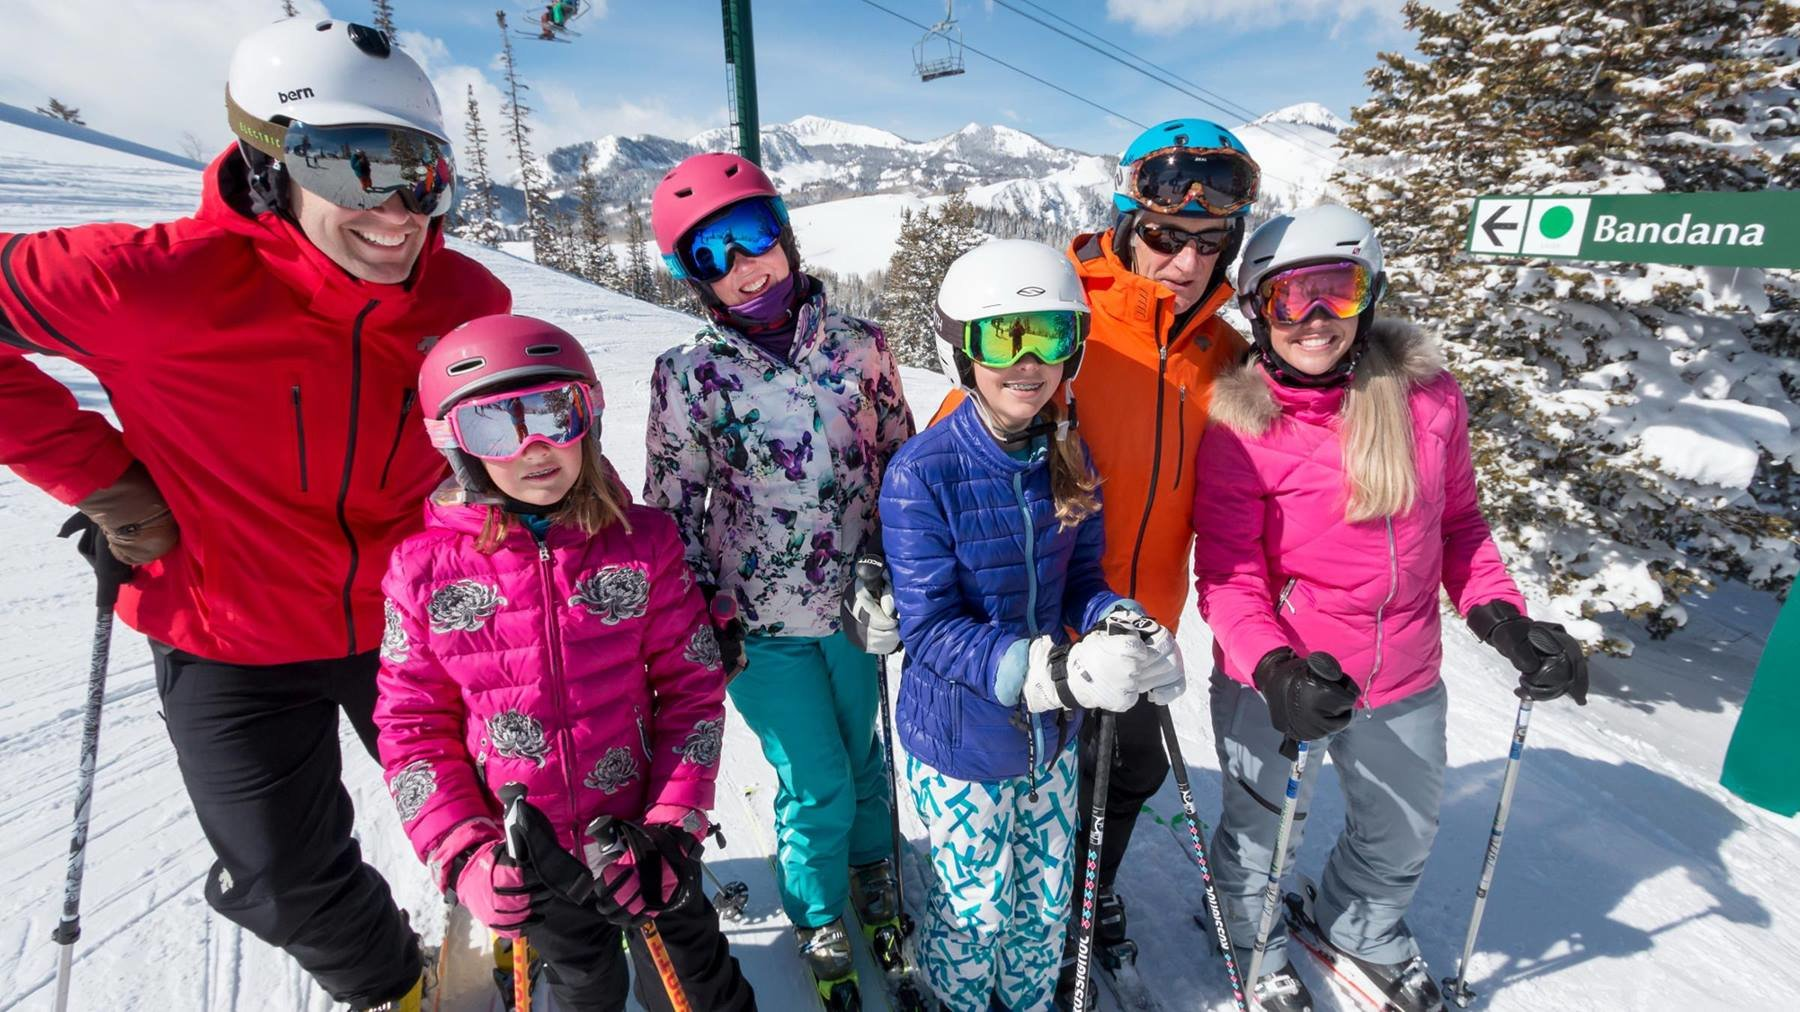 Ski packages make family getaways convenient